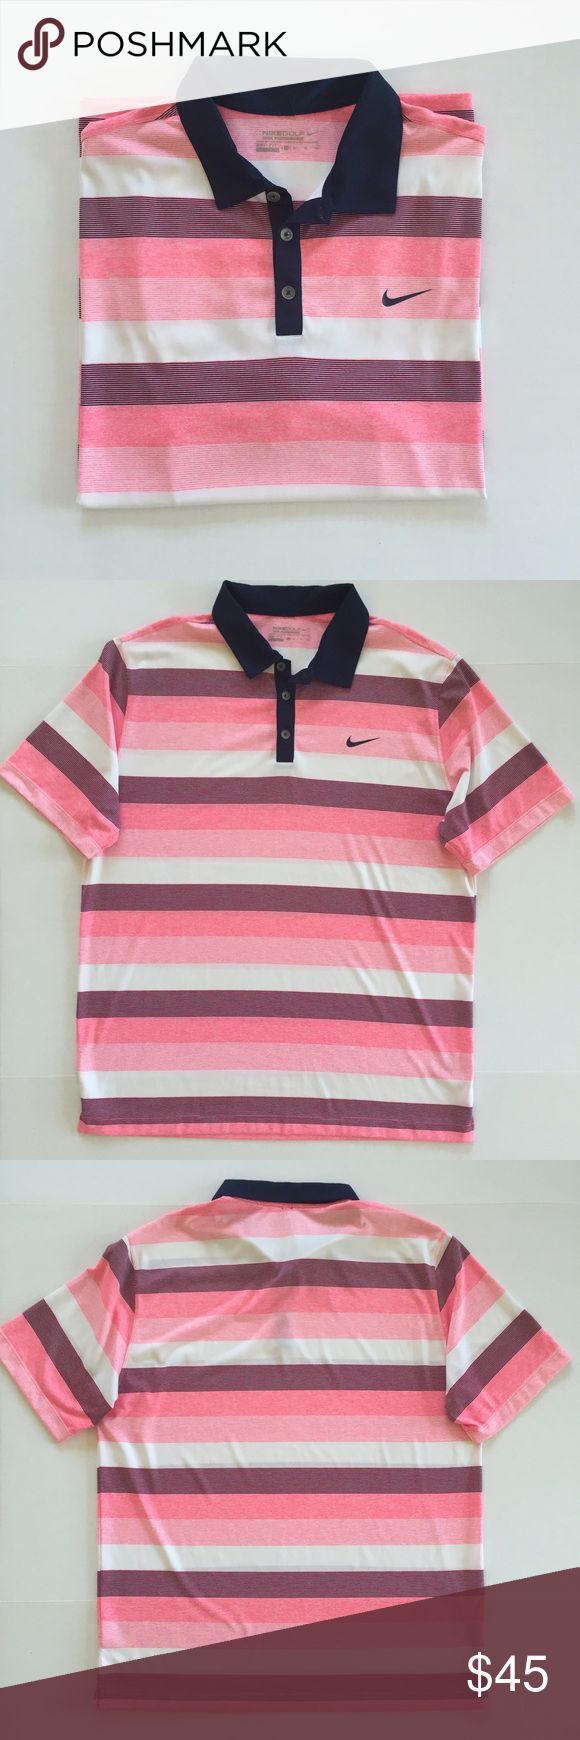 [Nike•Golf] men's short sleeved polo shirt XL [Nike•Golf] men's short sleeved polo shirt XL •🆕listing •excellent condition, work once, looks new •navy blue/pink/white color stripe design •button up collar •material 100% polyester •offers welcomed using the offer feature or bundle for the best discount•••• Nike Shirts Polos